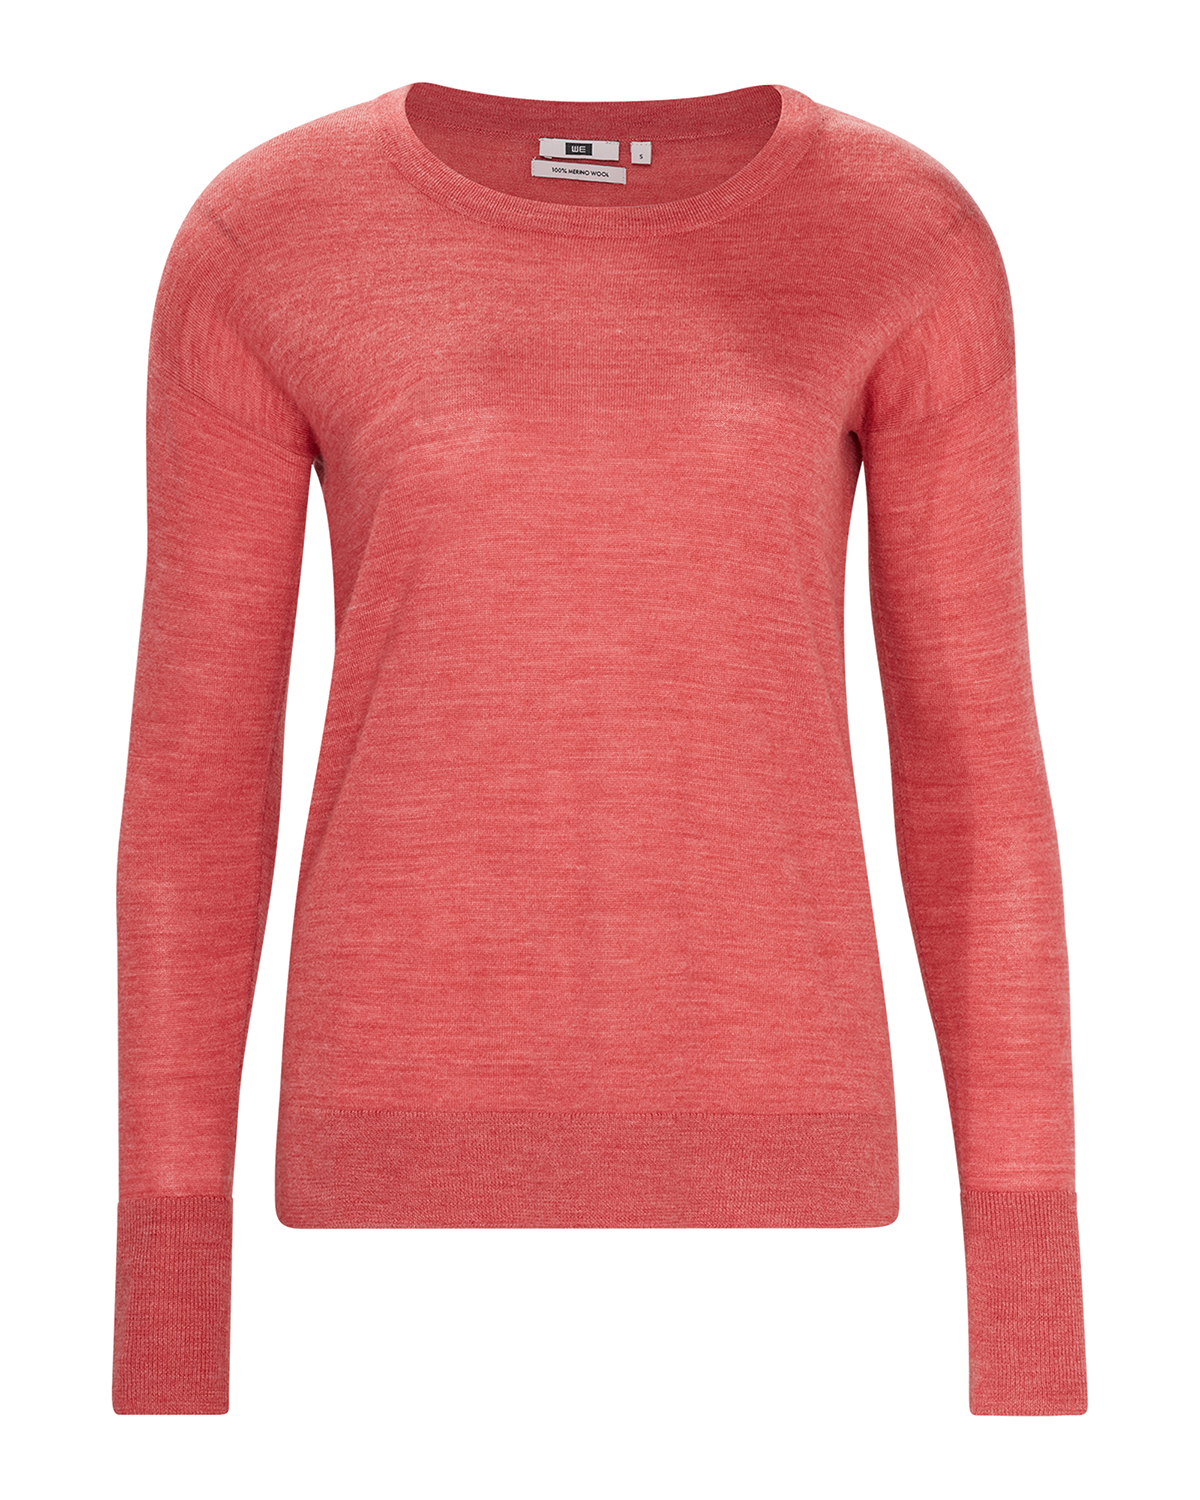 DAMES MERINO WOL TRUI | 79963794 WE Fashion